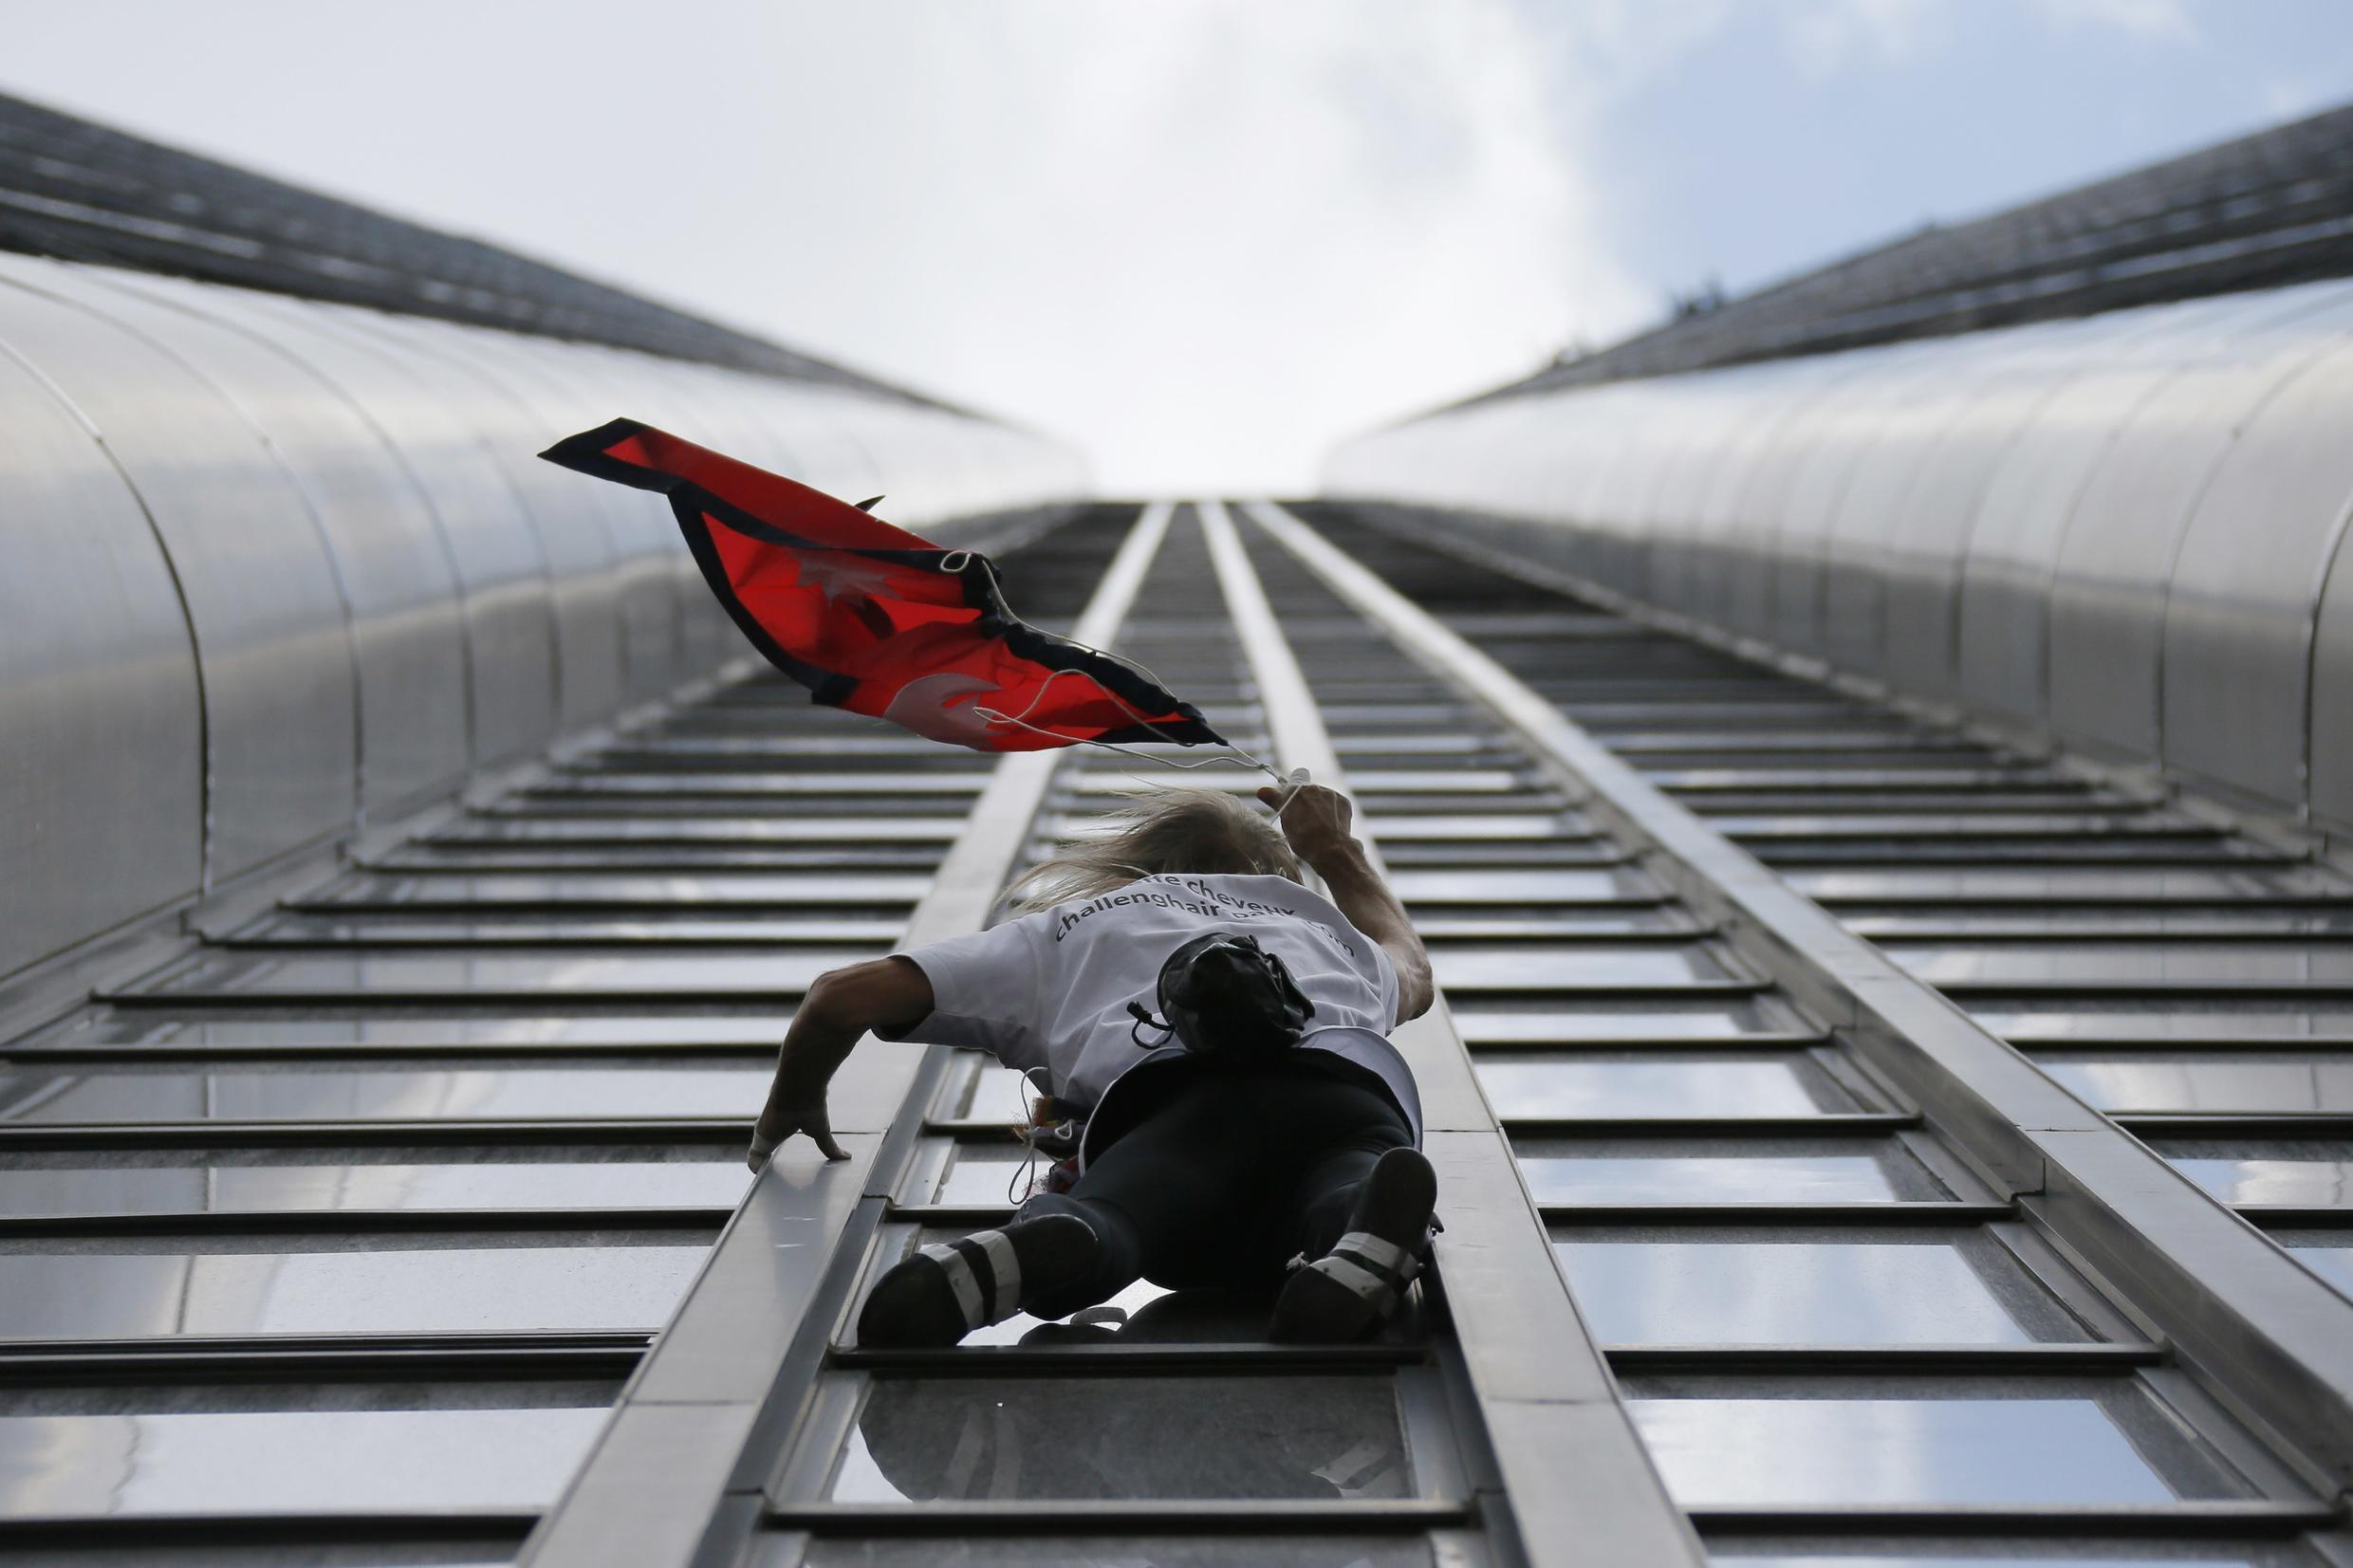 """French climber Alain Robert, also known as """"Spiderman"""", holds the flag of Nepal as he scales the Tour Montparnasse, a 210-metre (689 ft) building in central Paris, France April 28, 2015, to show support for the victims after the earthquake in Nepal."""